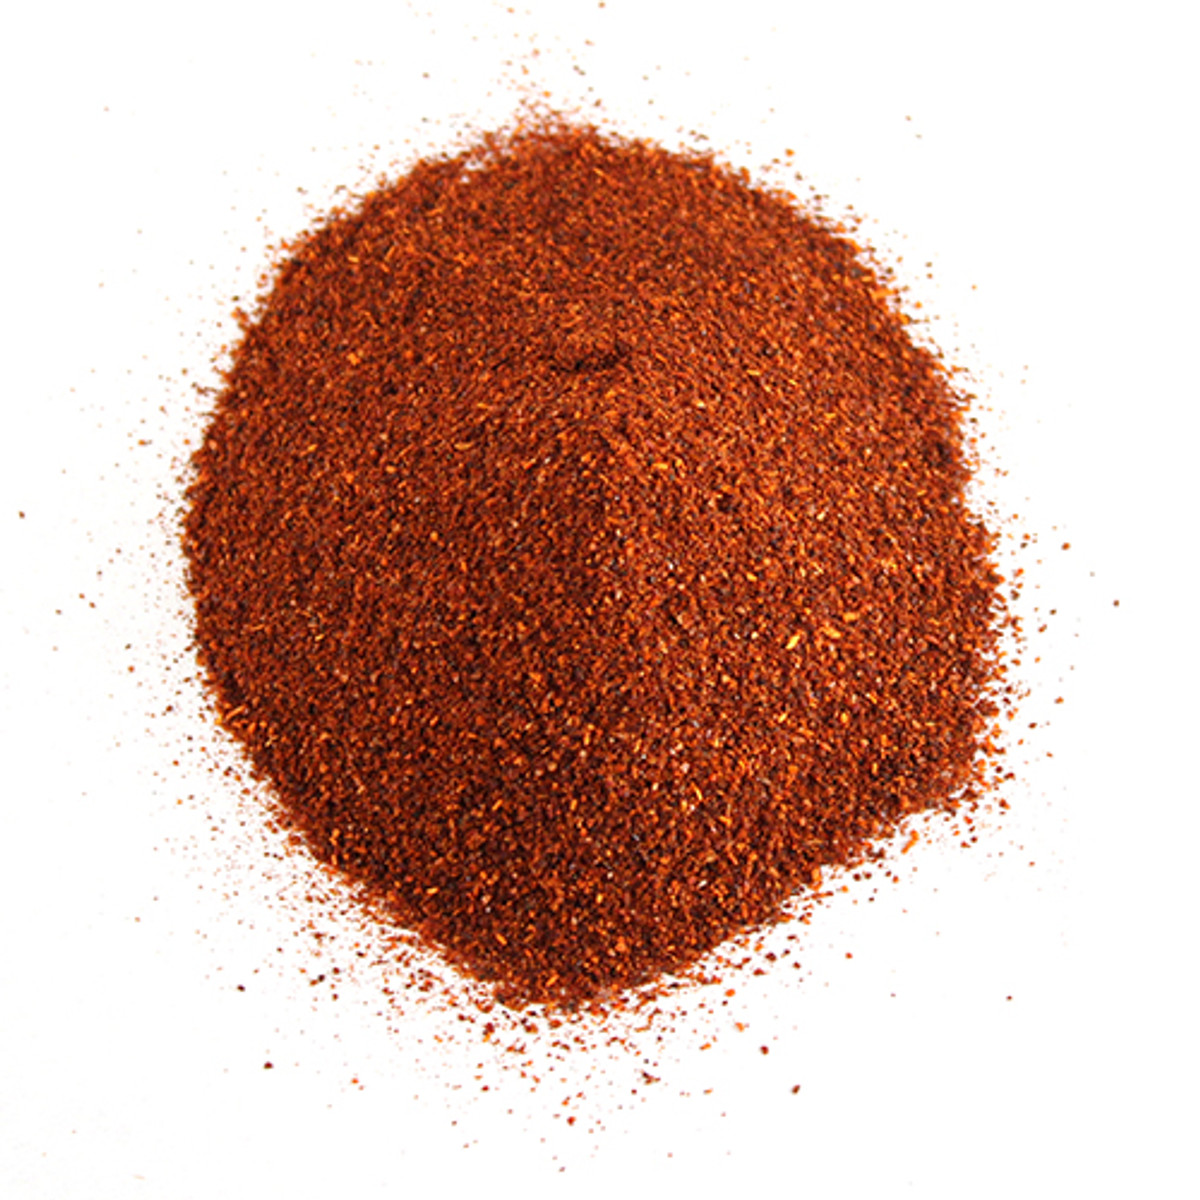 New Mexico Red Chili Hot Powder